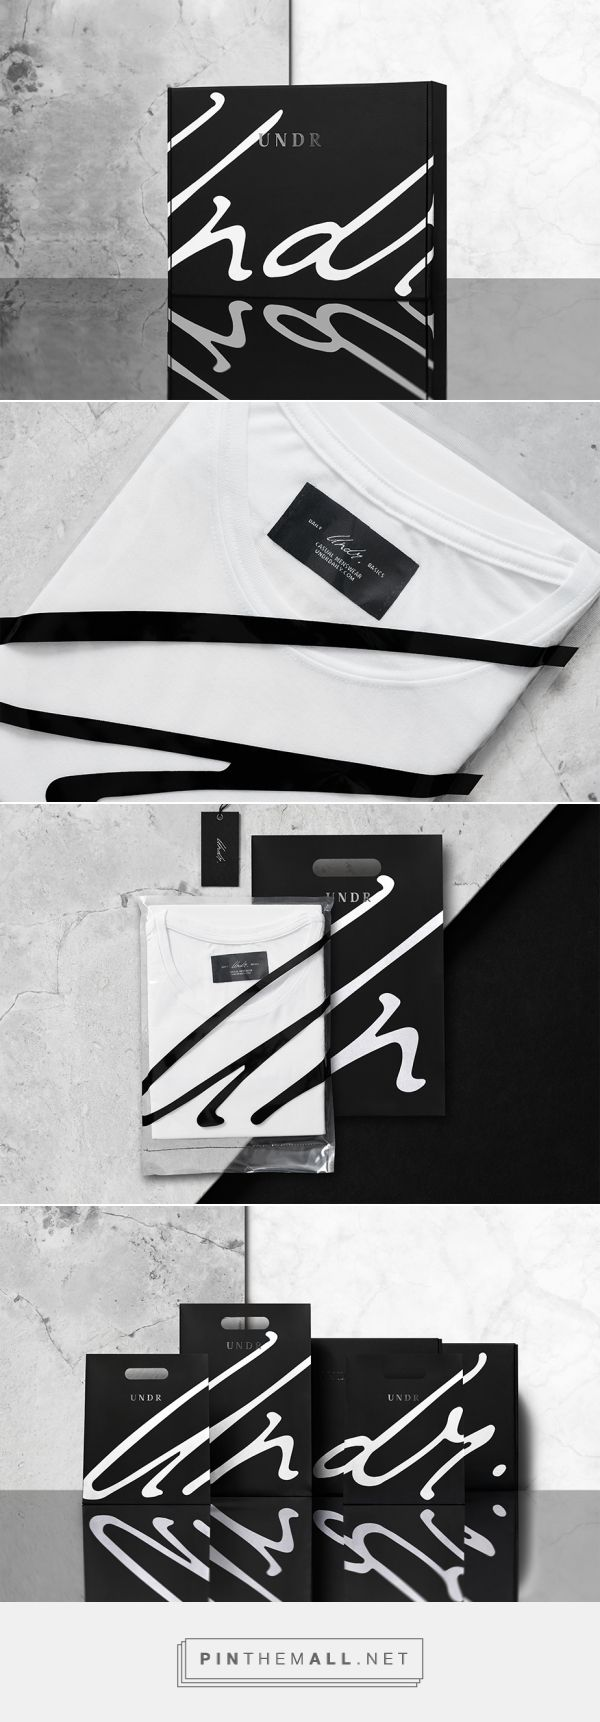 Undr | Branding & packaging | Undr constitutes a brand of men's basics and underwear garments.